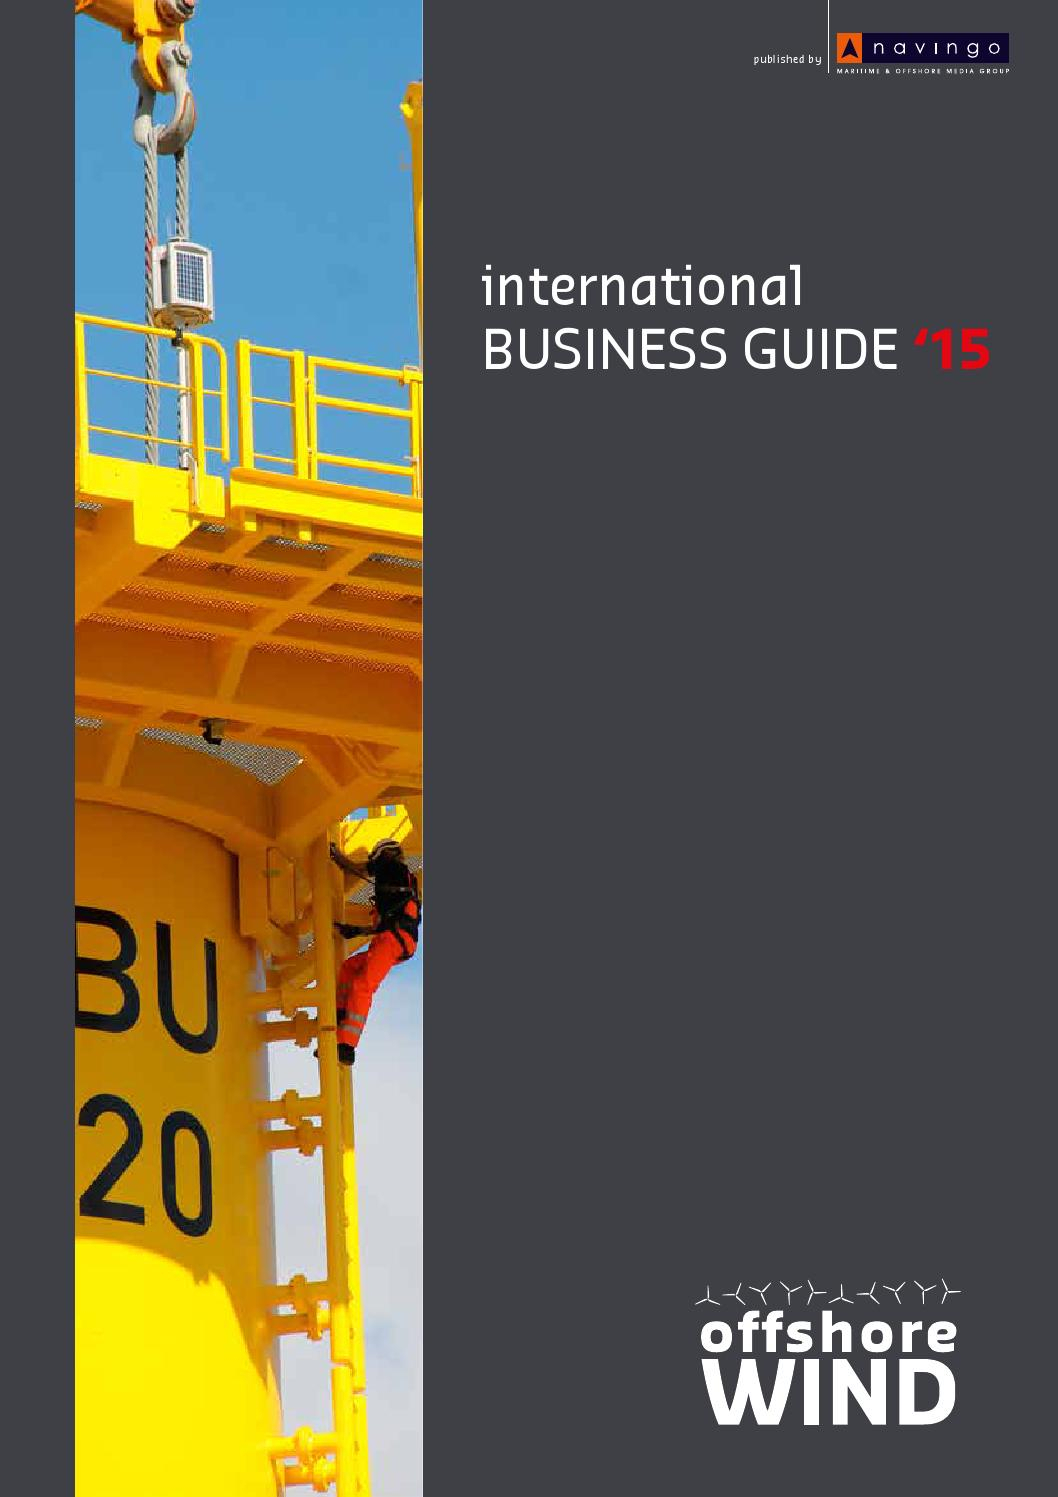 Offshore Wind International Business Guide 2015 By Navingo intended for Offshore Rotation Calendar Excel